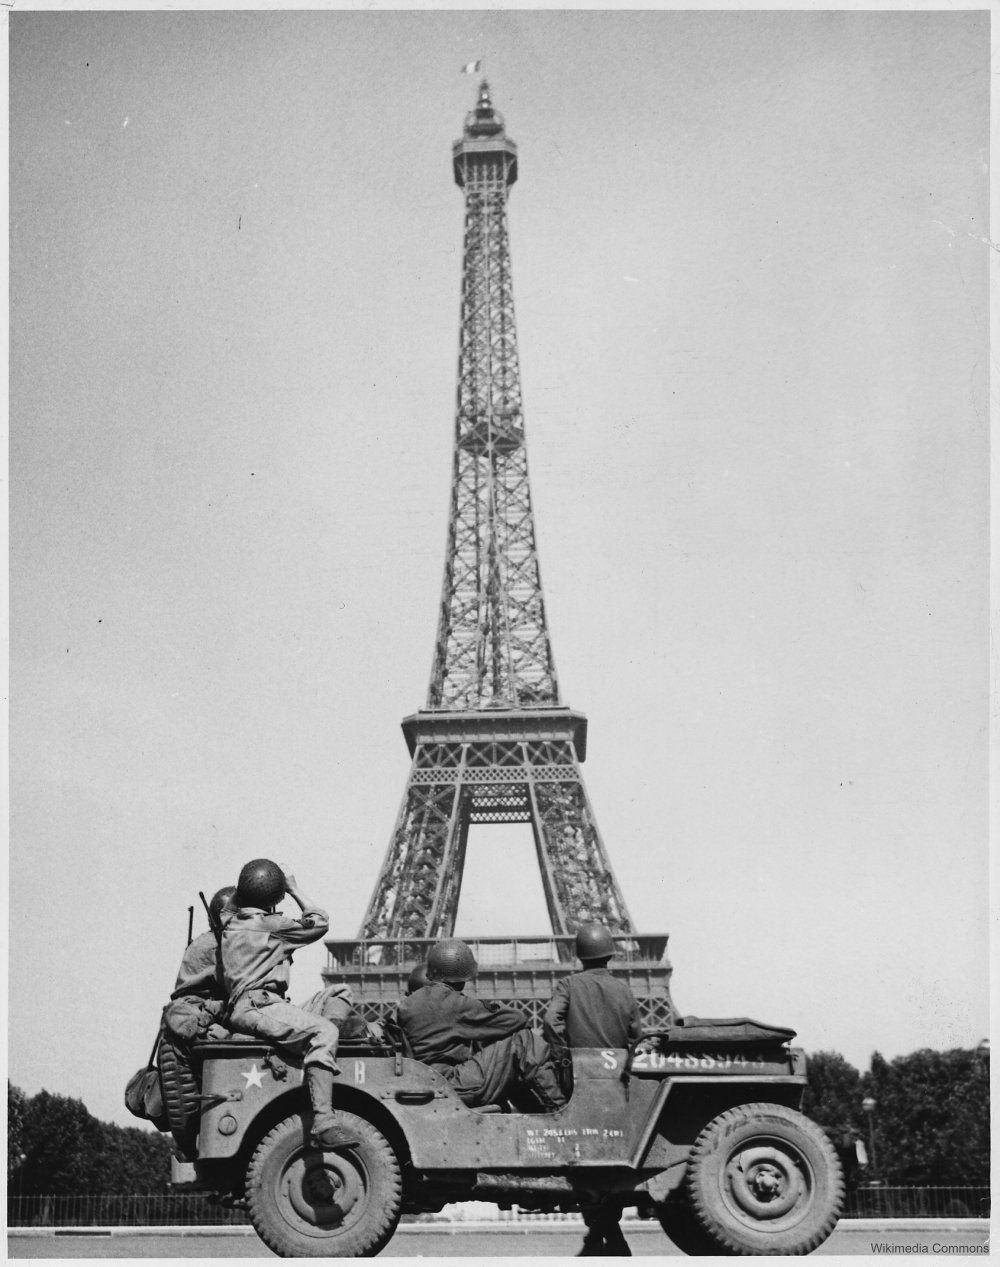 Eiffel Tower in 1945 with American Troops in jeep